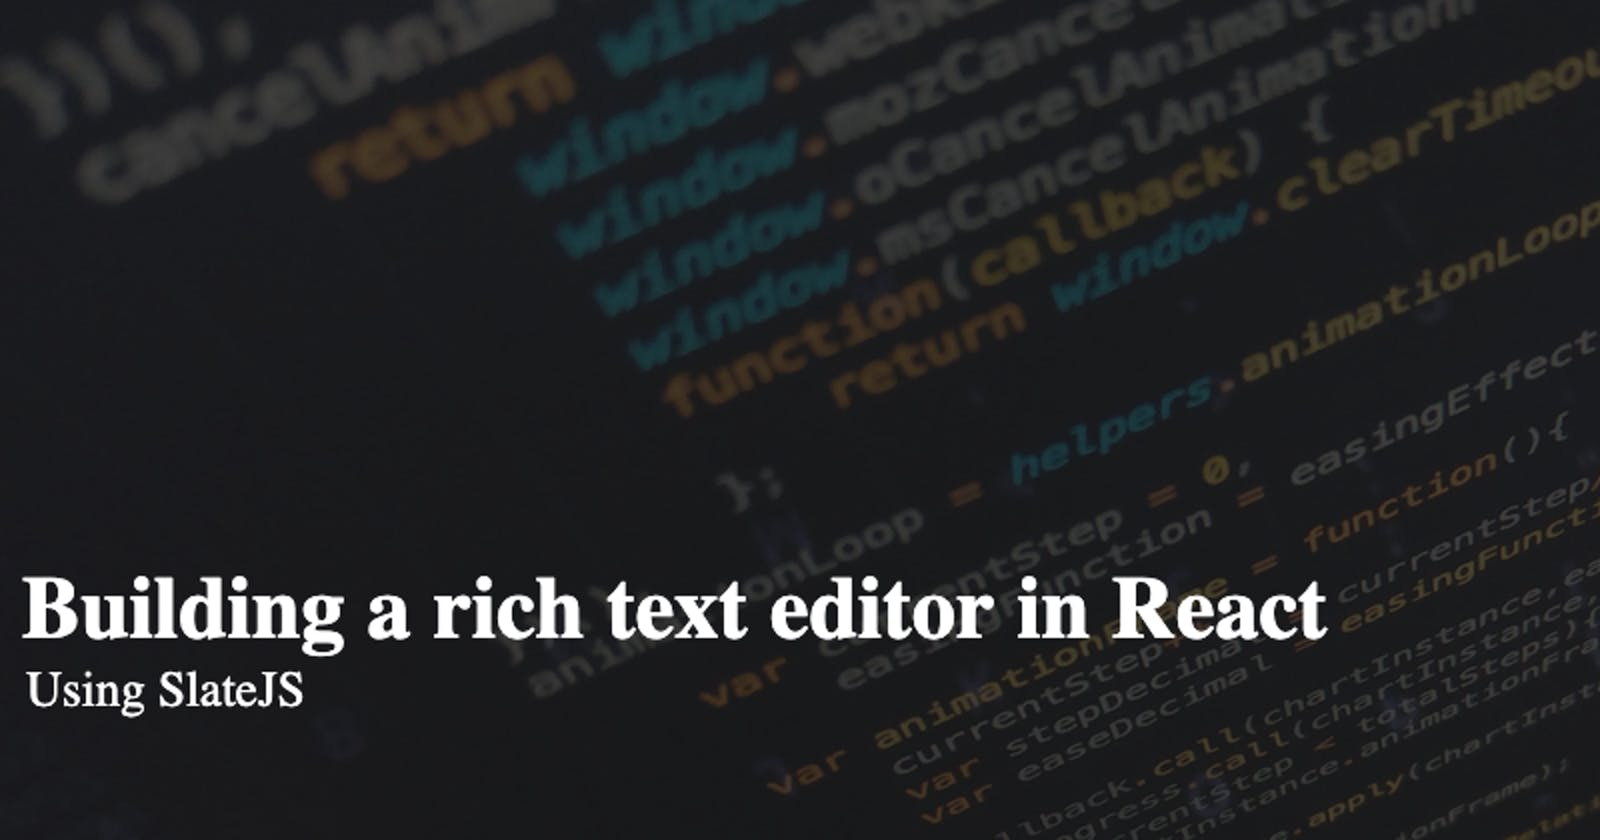 Building a rich text editor in React with SlateJS